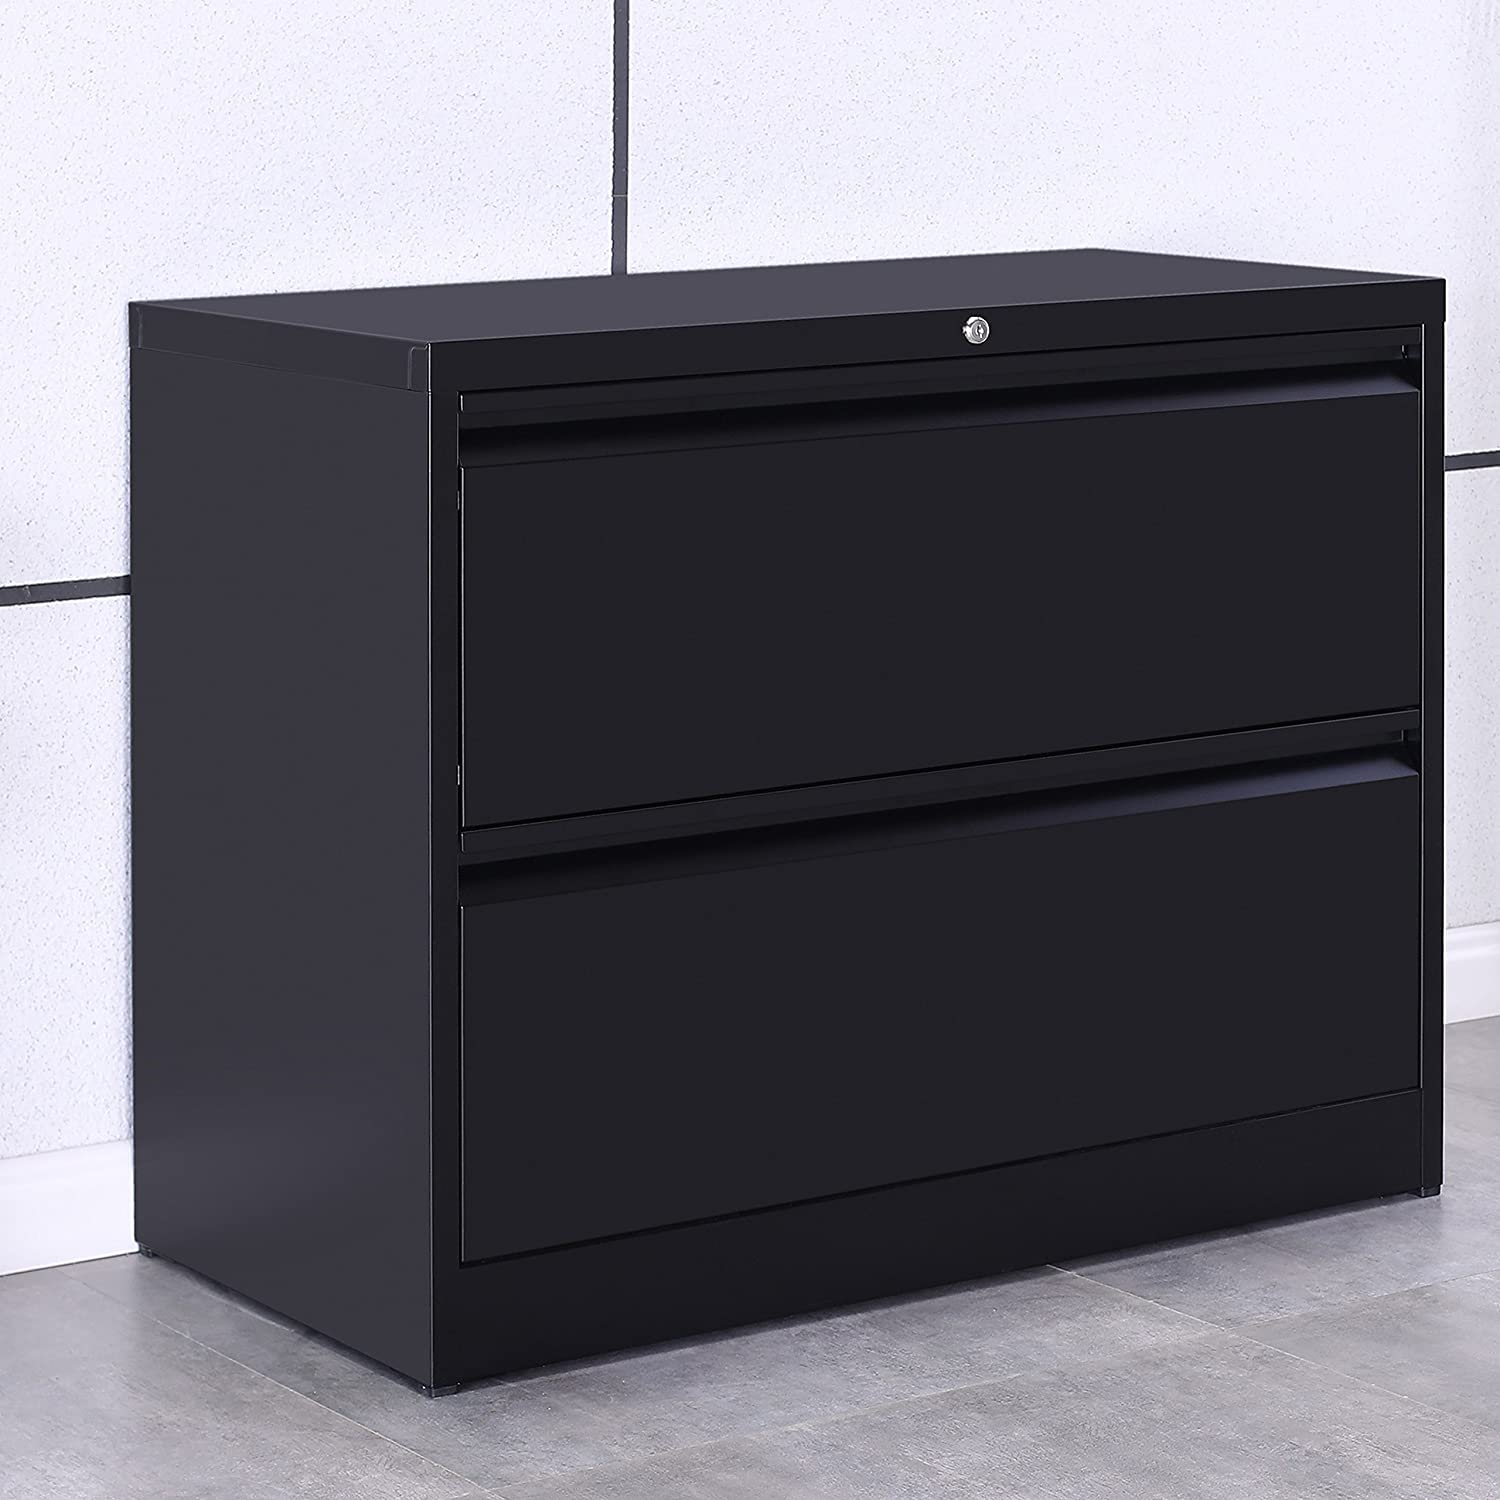 ModernLuxe Lateral File Cabinet 2-Drawer with Lock and Key (Black)